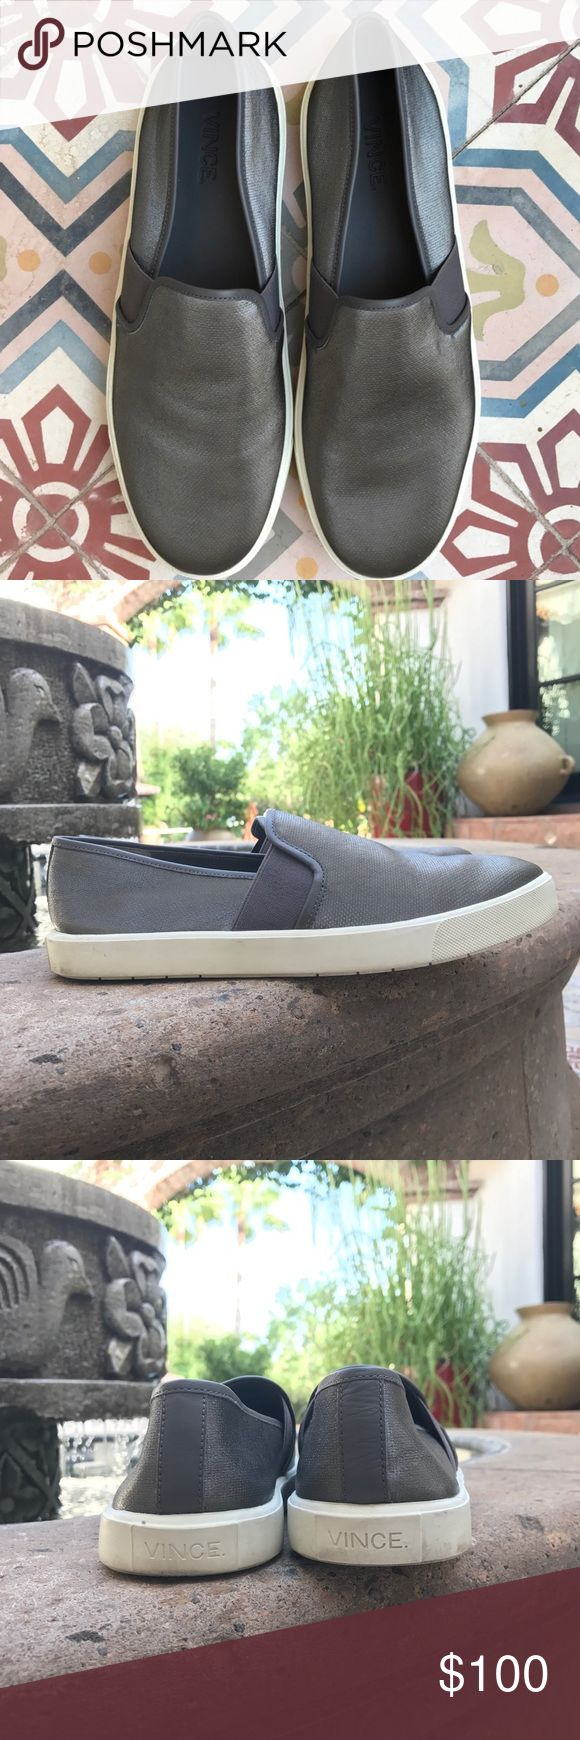 VINCE BLAIR SNEAKERS SLIP ON TENNIS SHOE SIZE 7 PRELOVED.  Excellent condition.  These are super popular and trendy.  Gorgeous and easy to wear.  BUNDLE AND SAVE. 🤗🤗🤗 Vince Shoes Sneakers